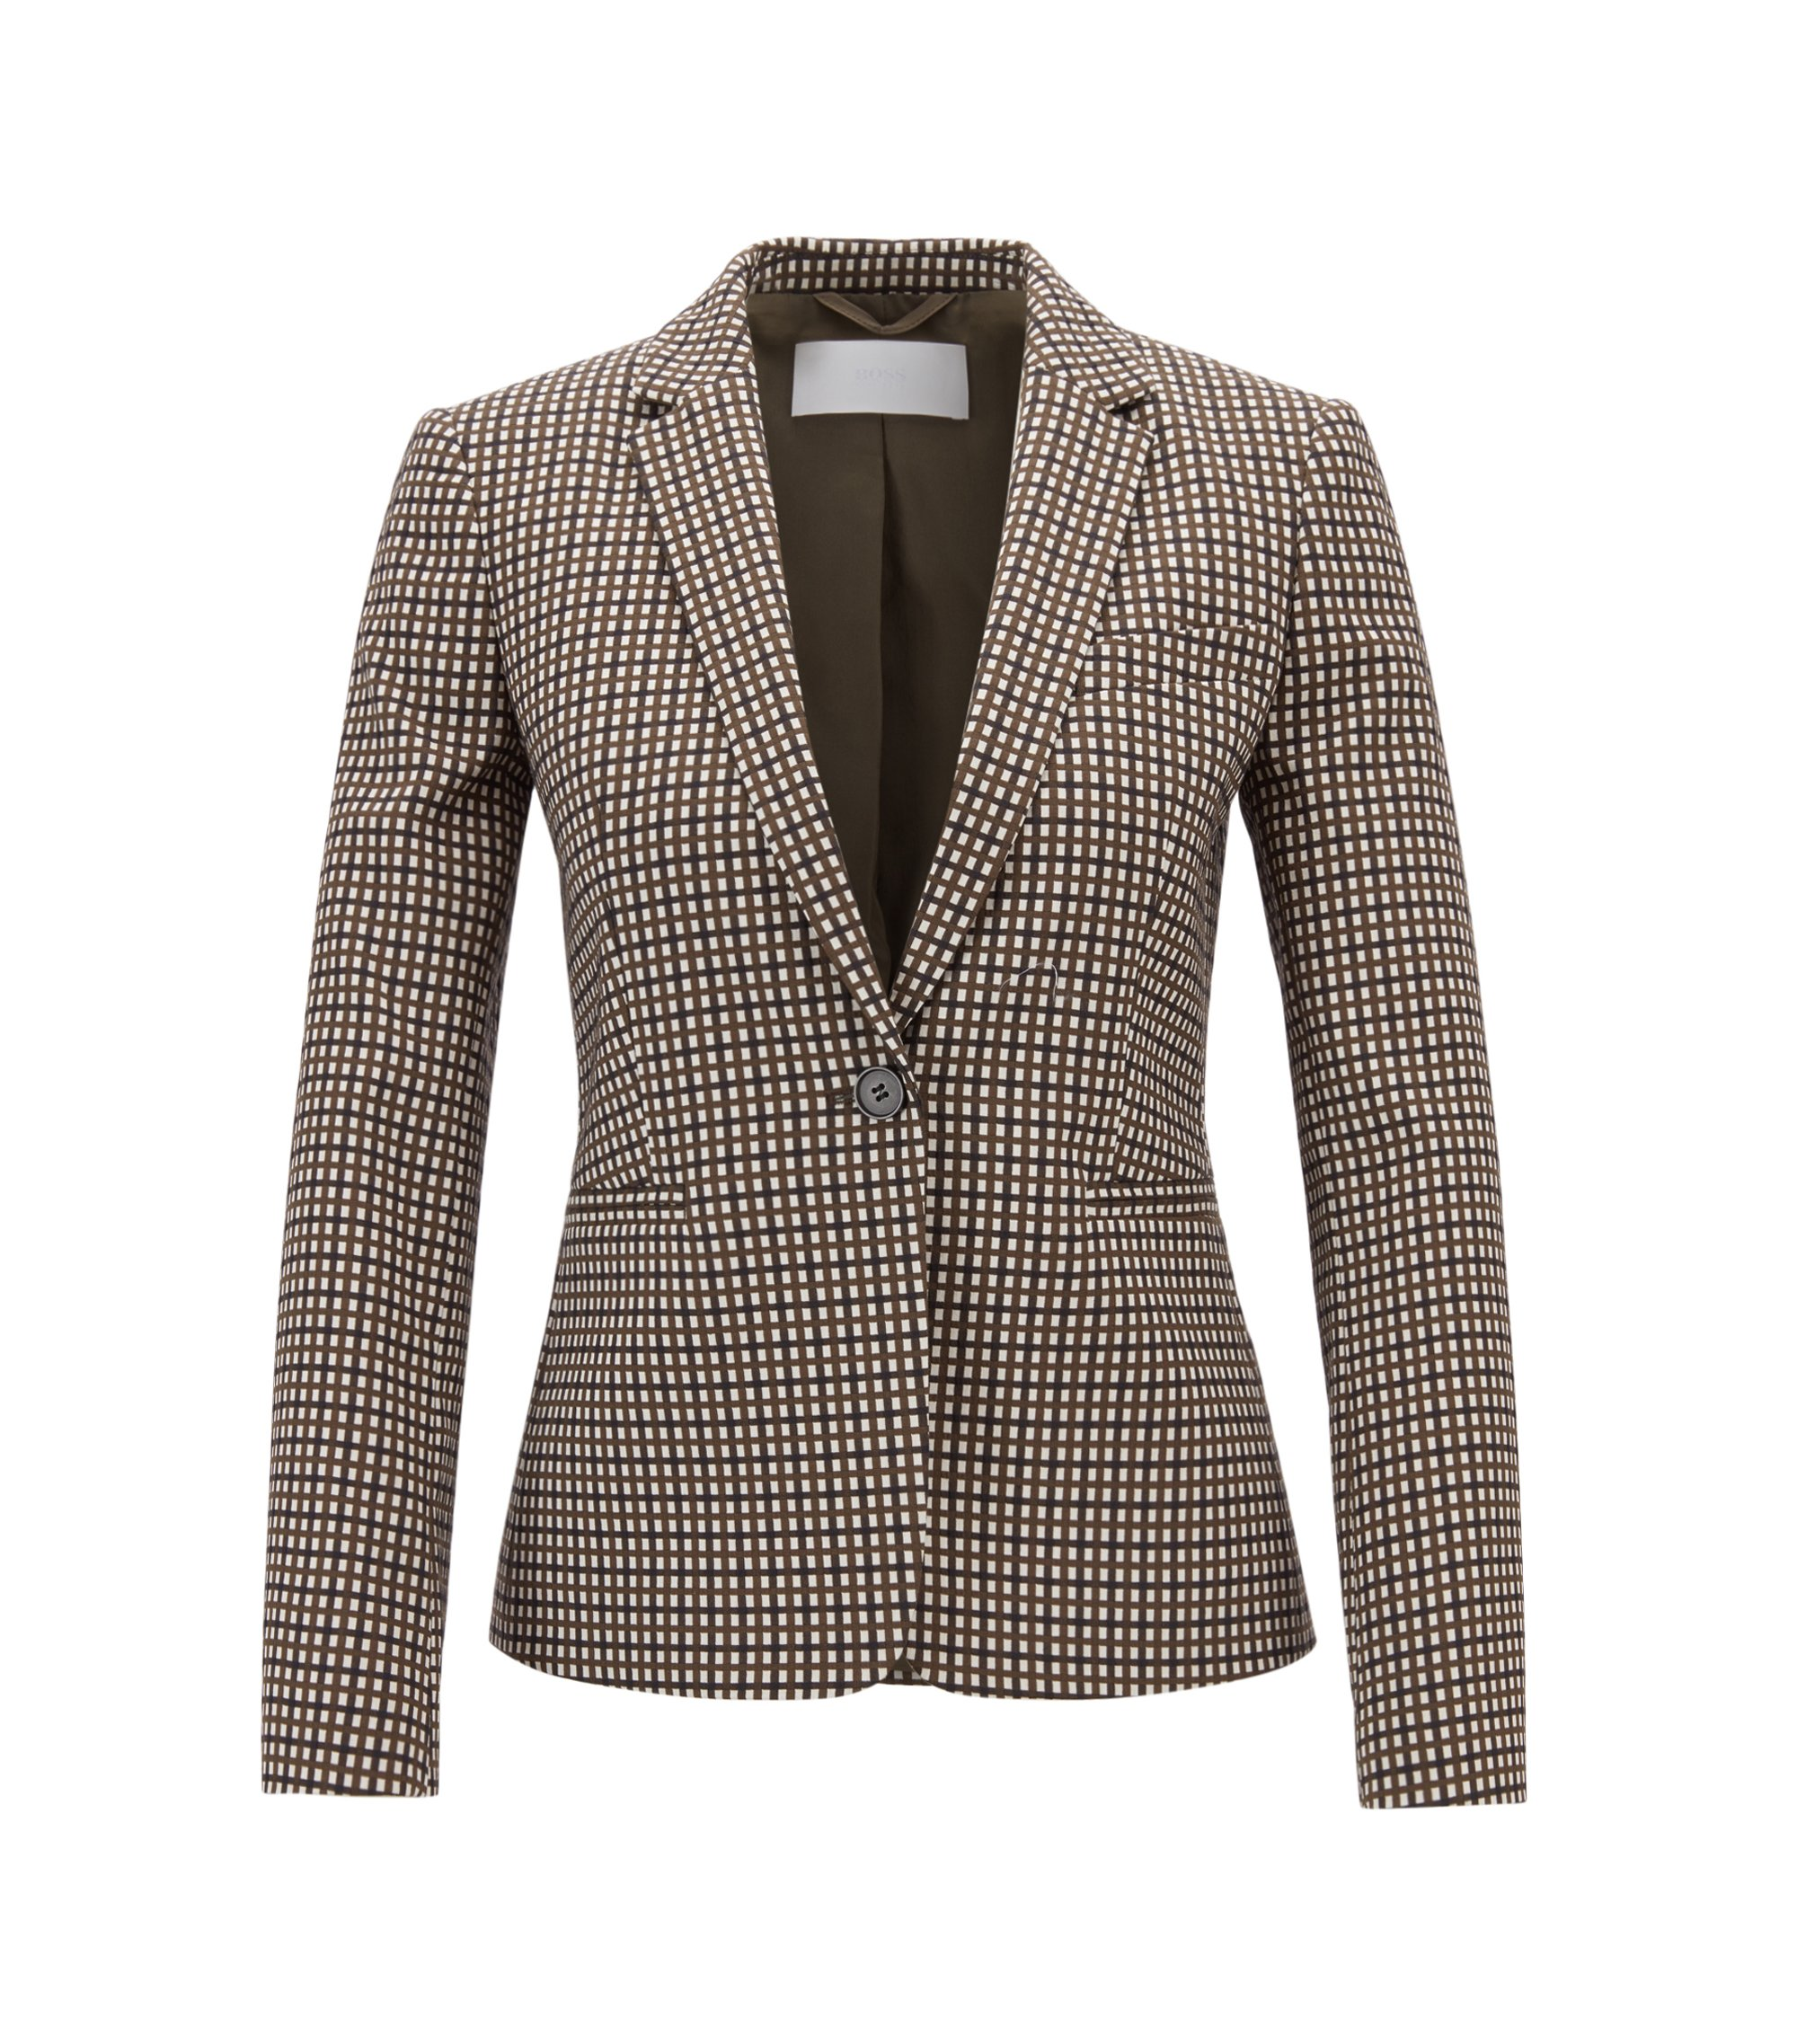 One-button blazer in stretch fabric with micro check pattern, Patterned